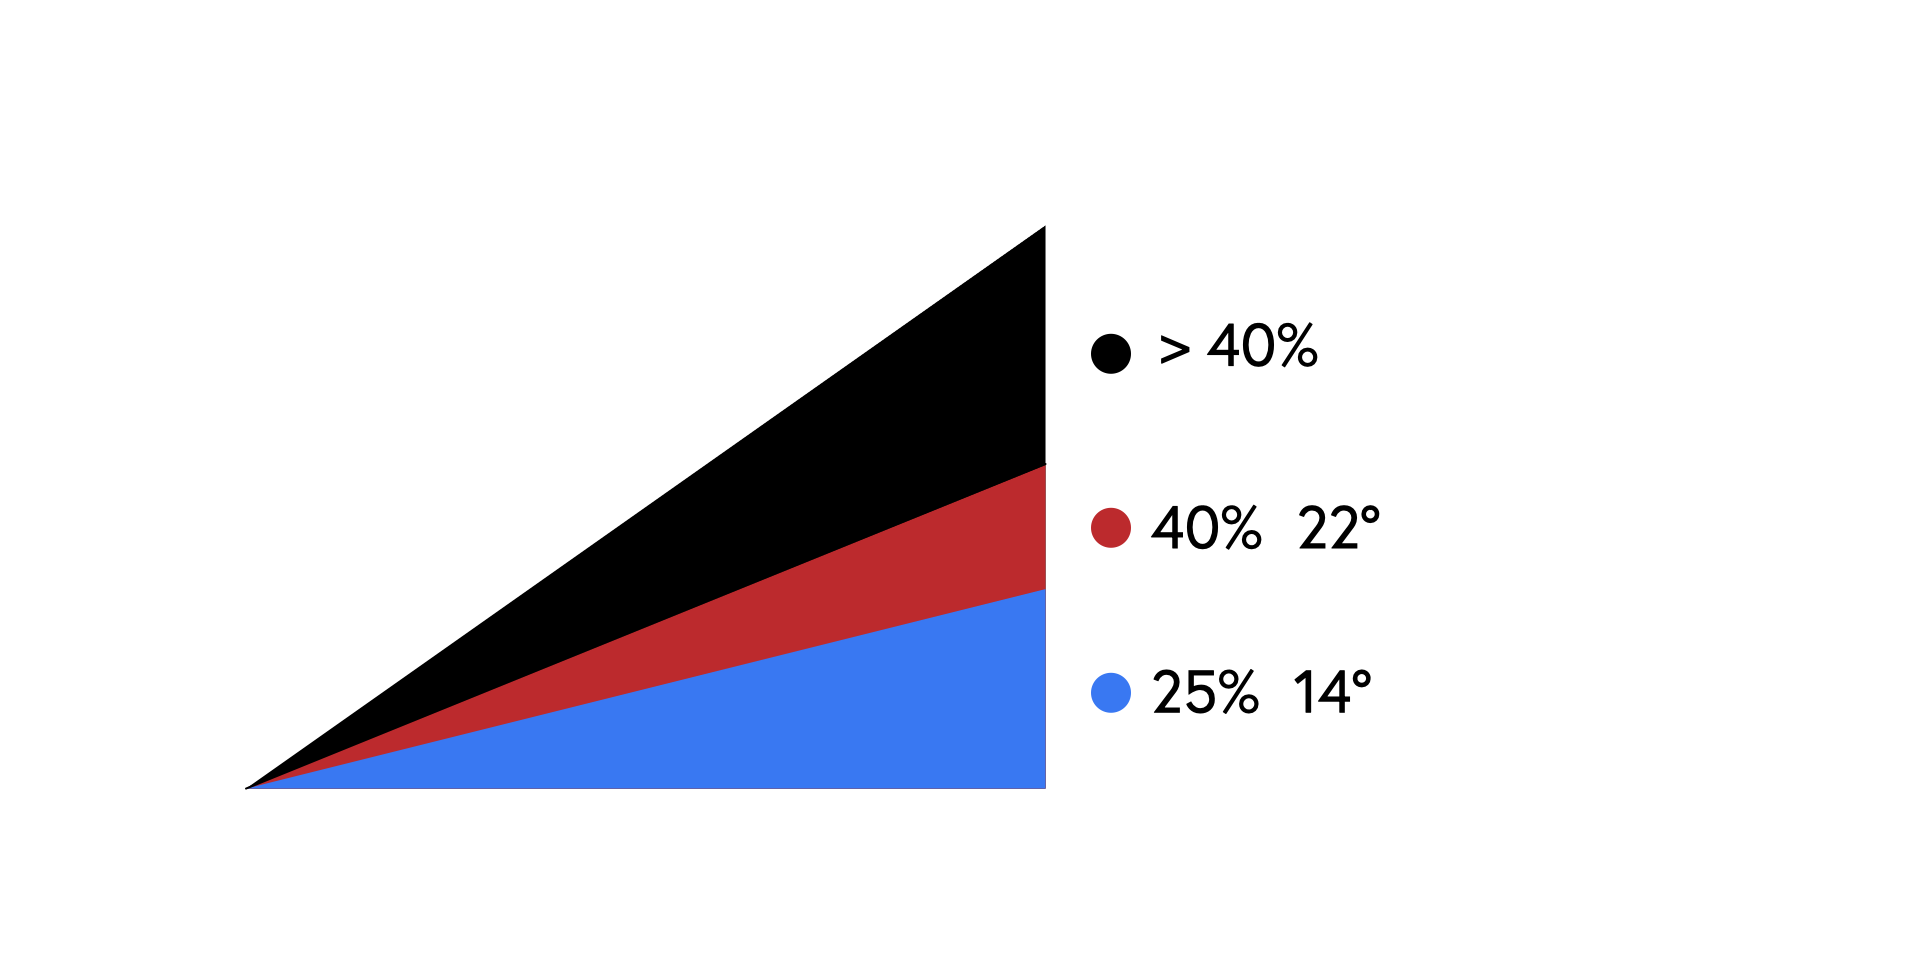 On the left there is a triangle which slopes upwards left to right and is split into black, red and blue triangles, on the left there is a black filled quarter centimetre circle with .40% next to it, below this is another red filled circle with 40% 22º next to it, then a blue filled circle with 25% and 14º, this forms a key for the